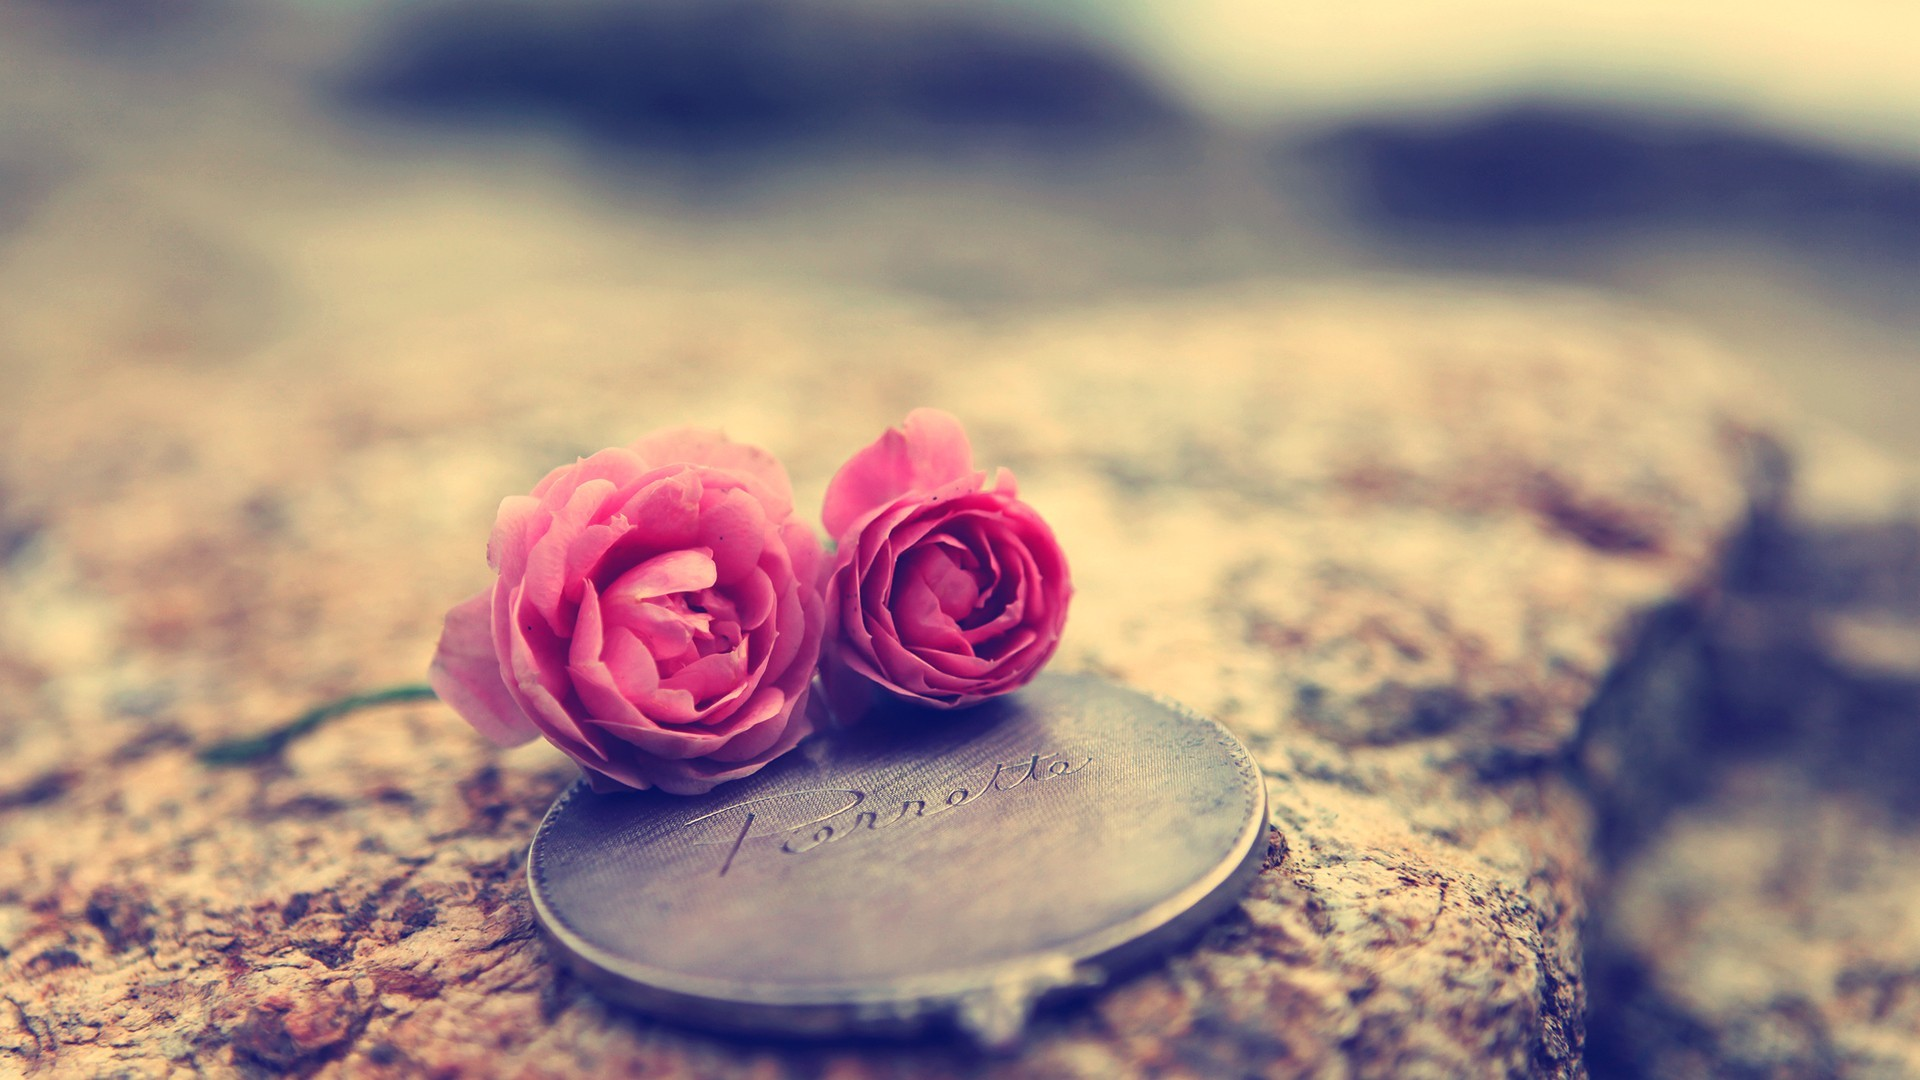 Best romantic wallpapers for mobile phones